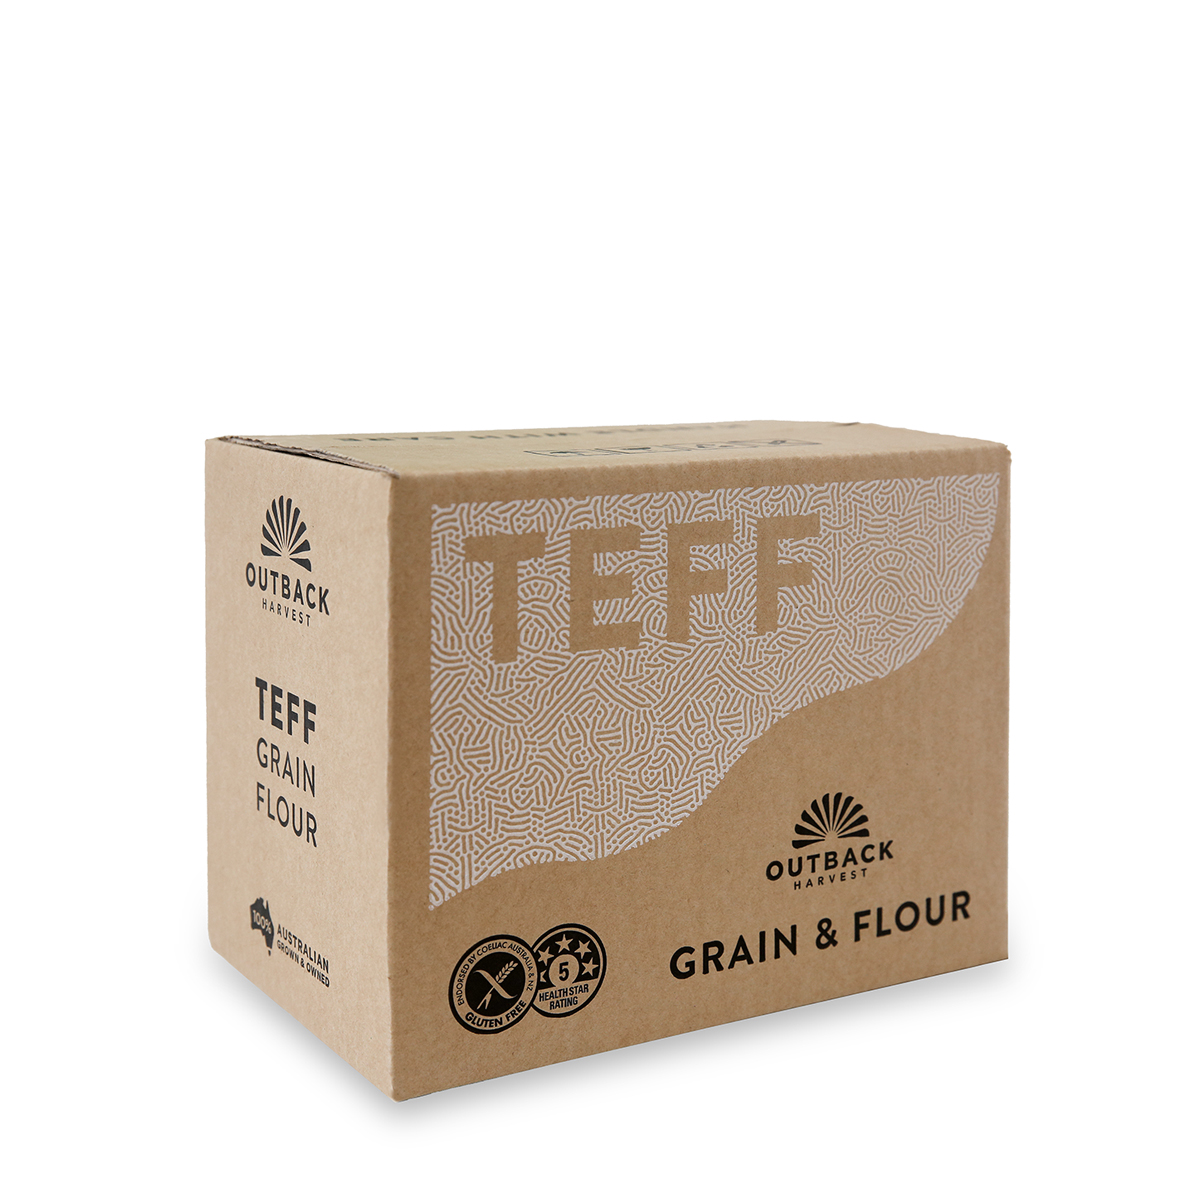 Outback Harvest Teff grain and flour